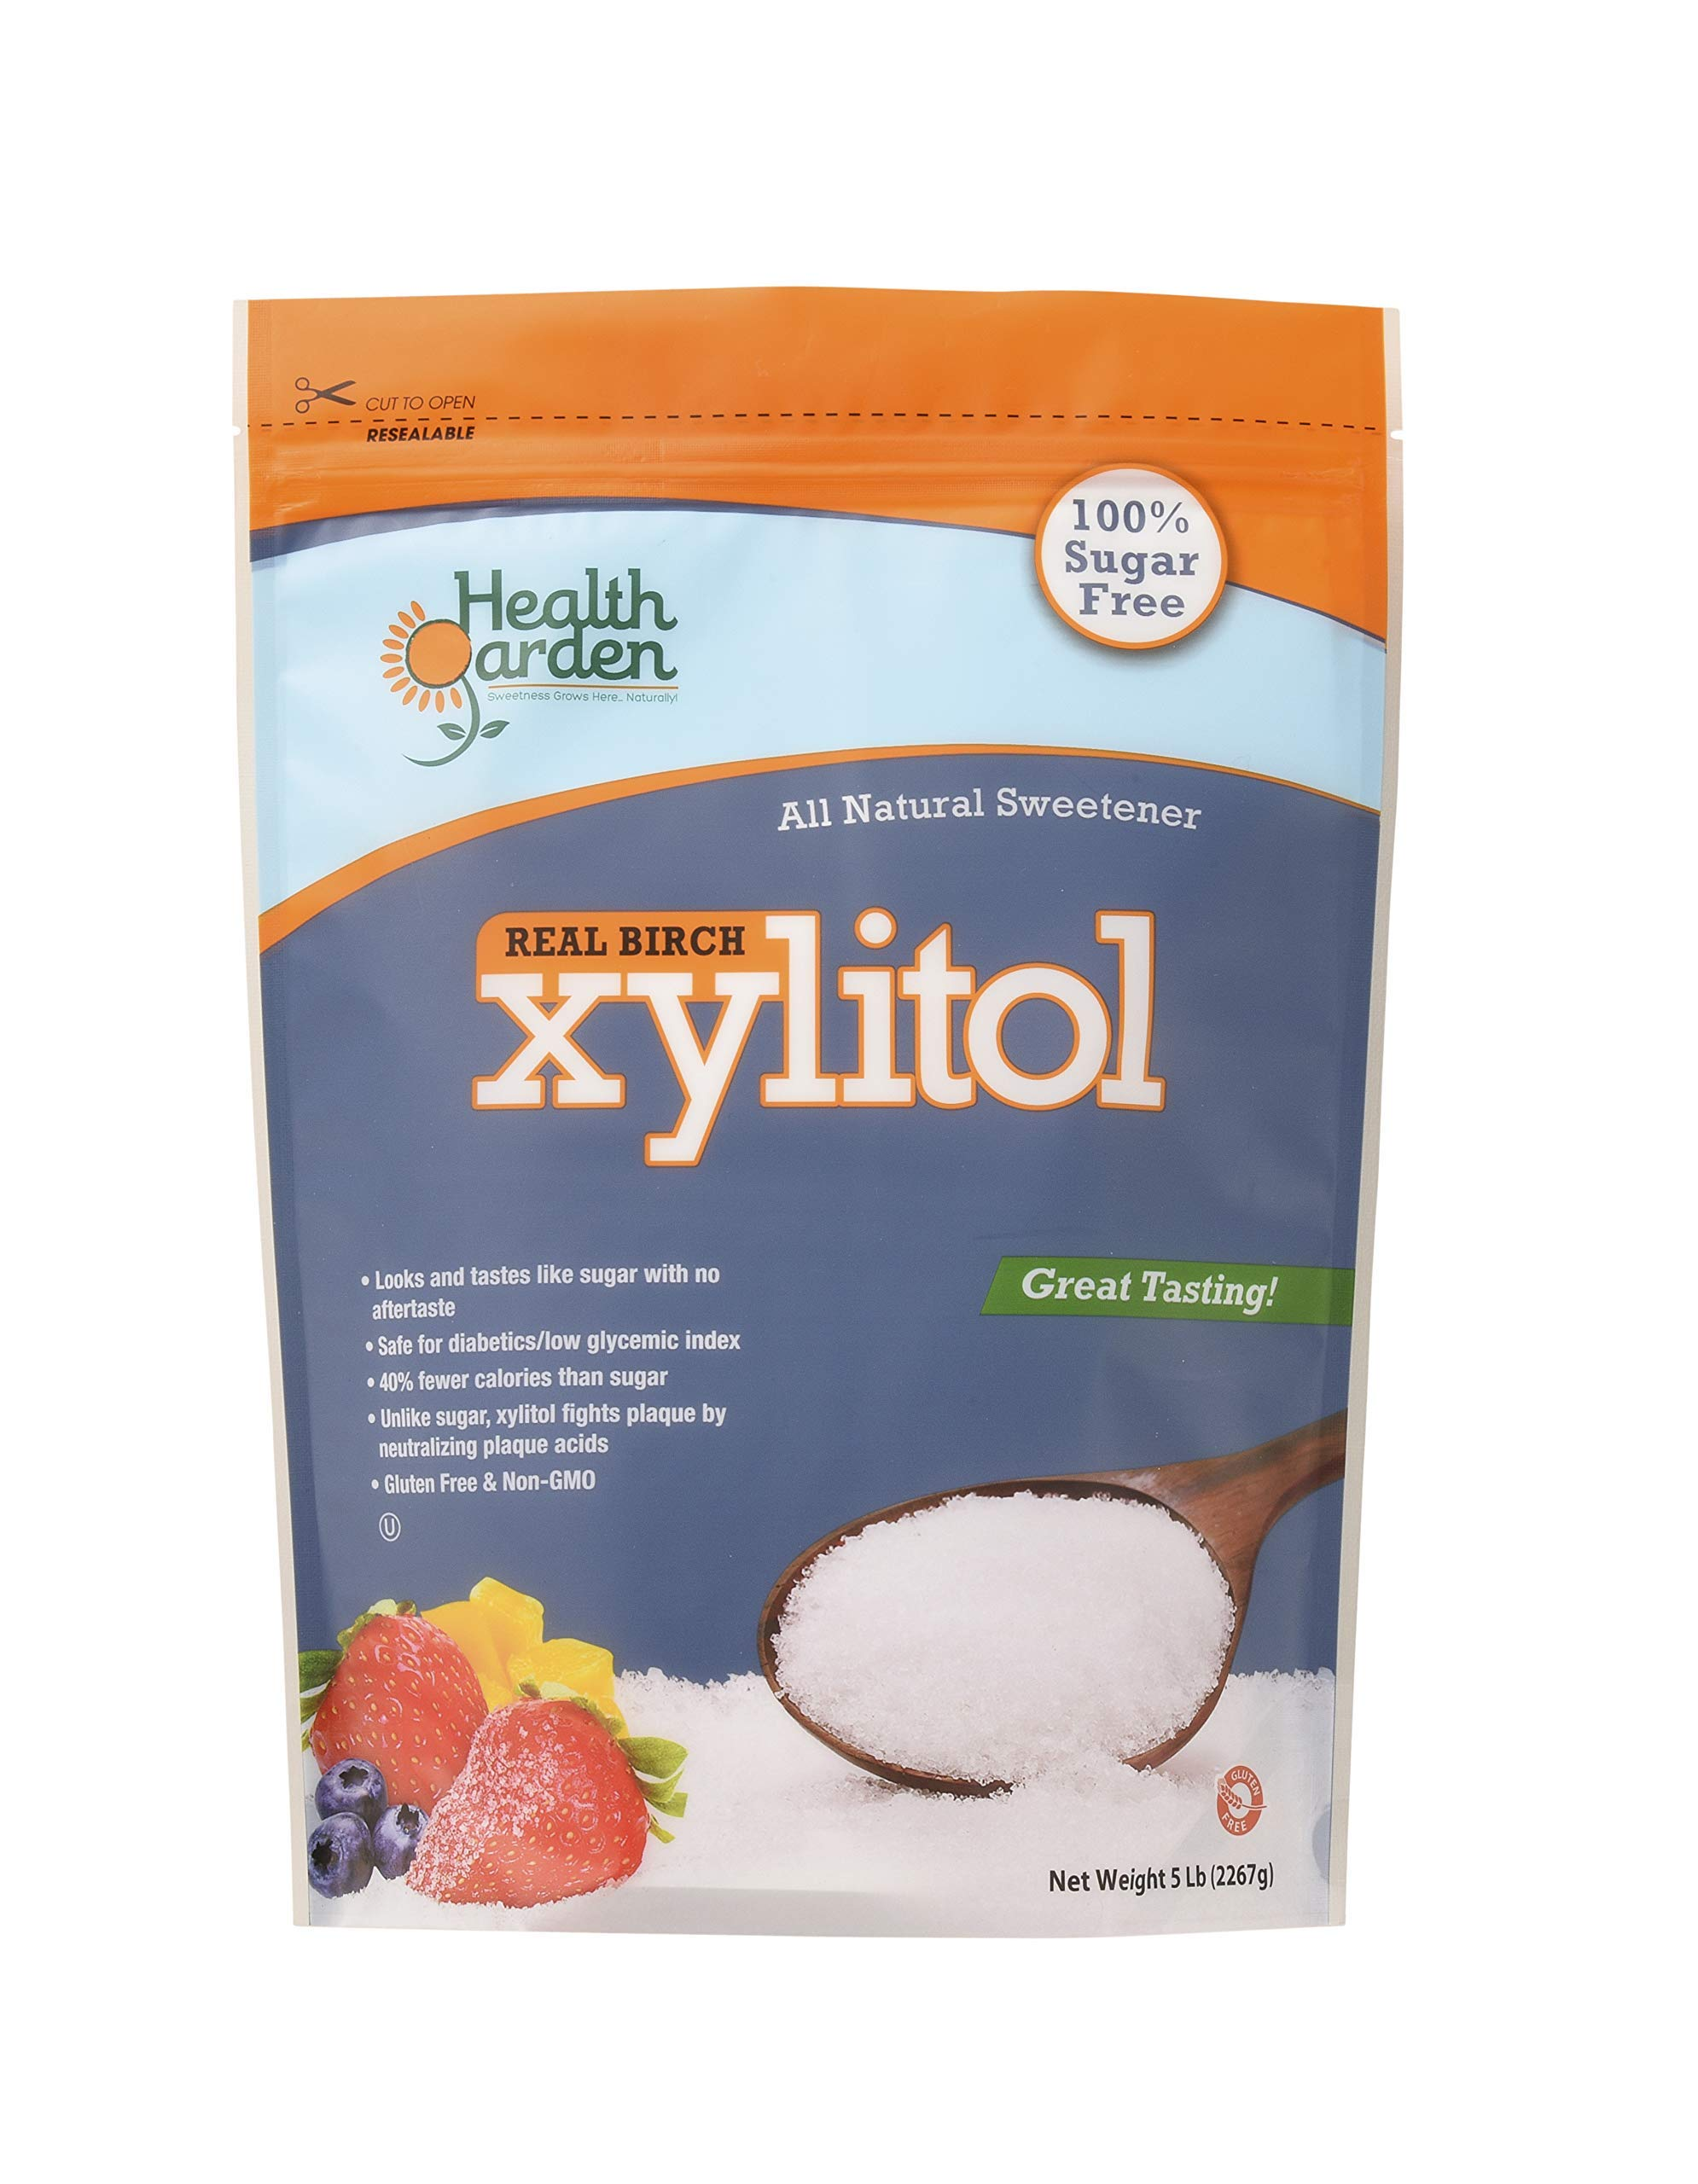 Garden of Health Products Kosher Birch Xylitol (Not from Corn), 5 lb by HEALTH GARDEN (Image #1)